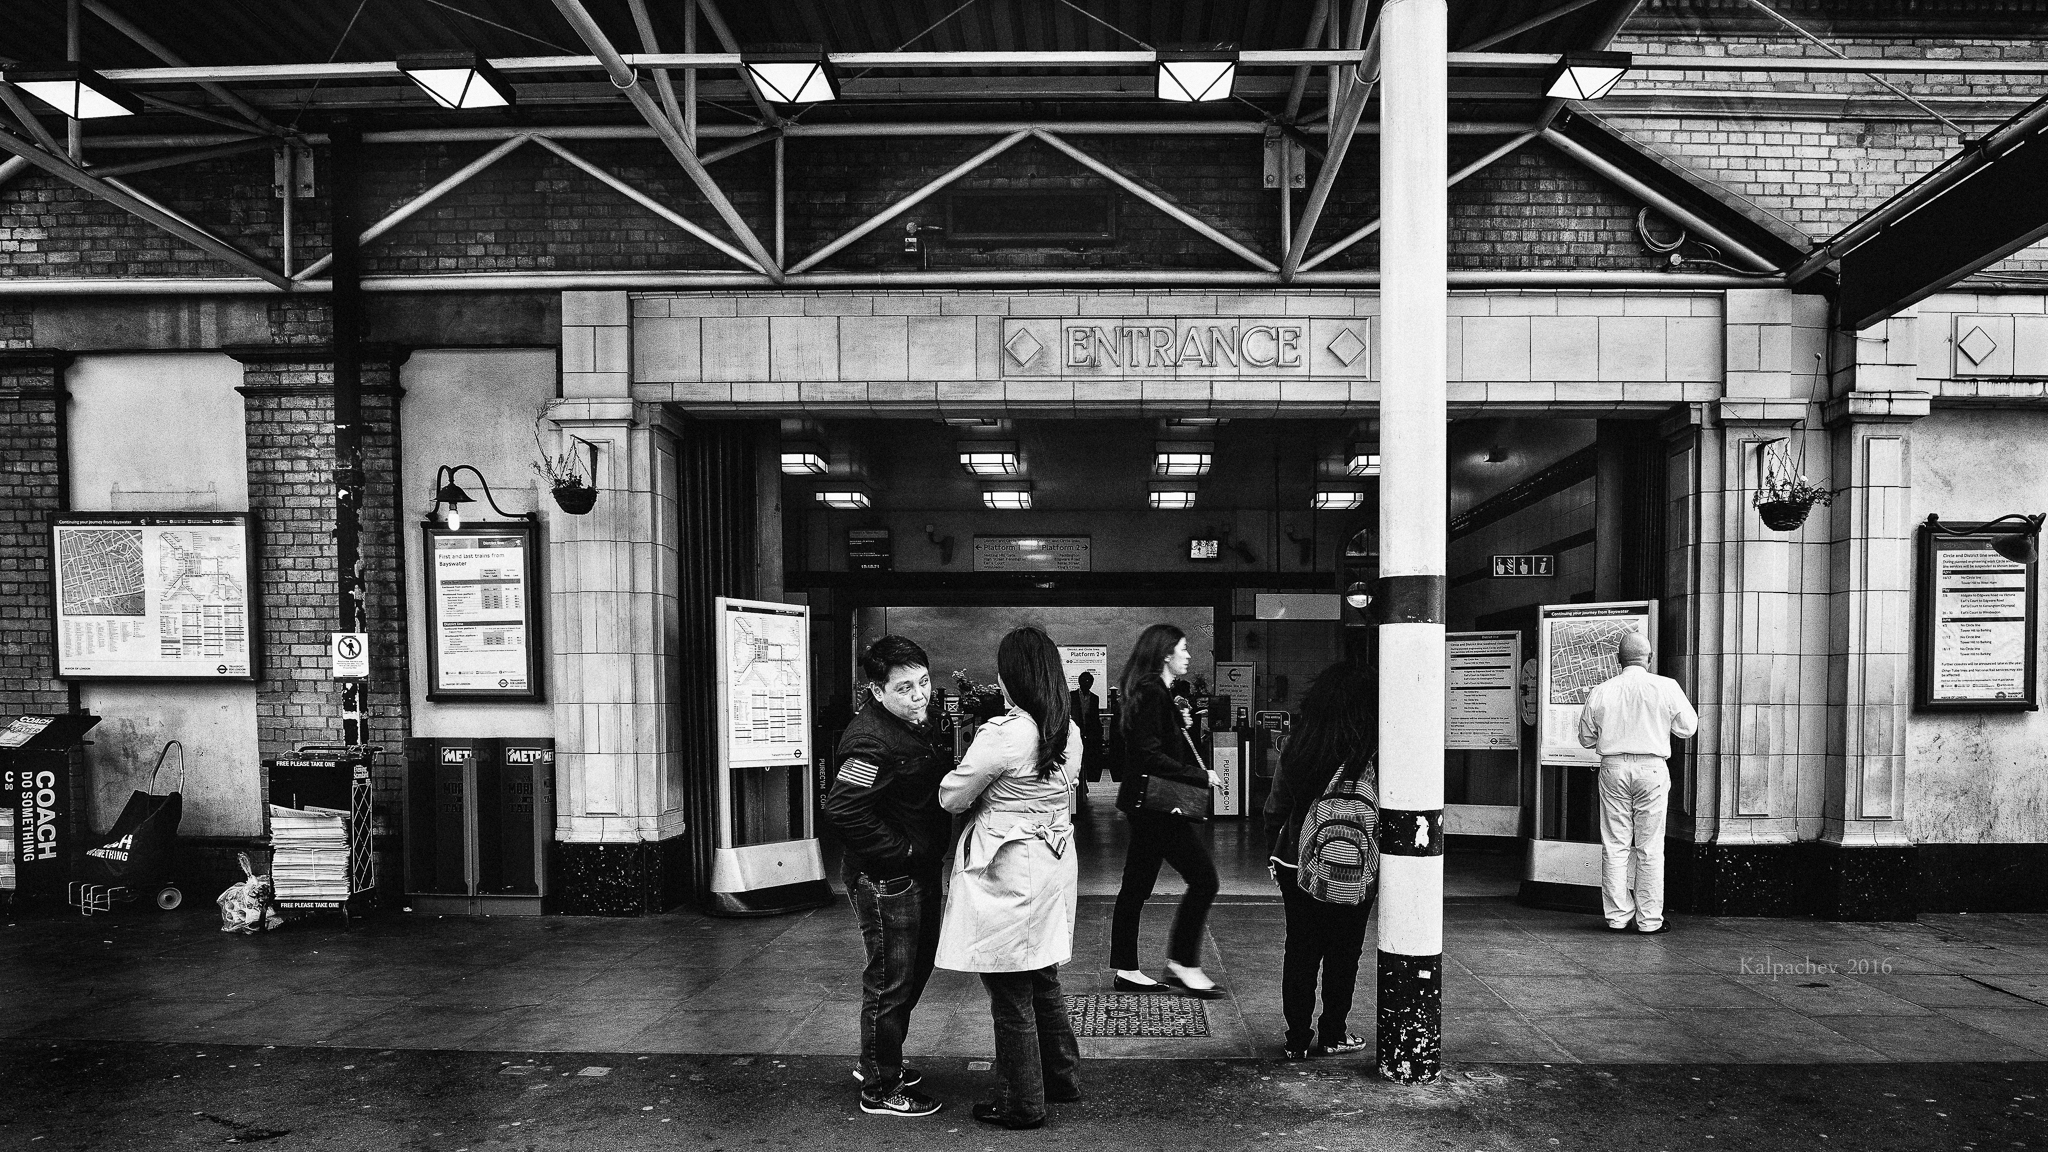 Bayswater tube station #underground #london